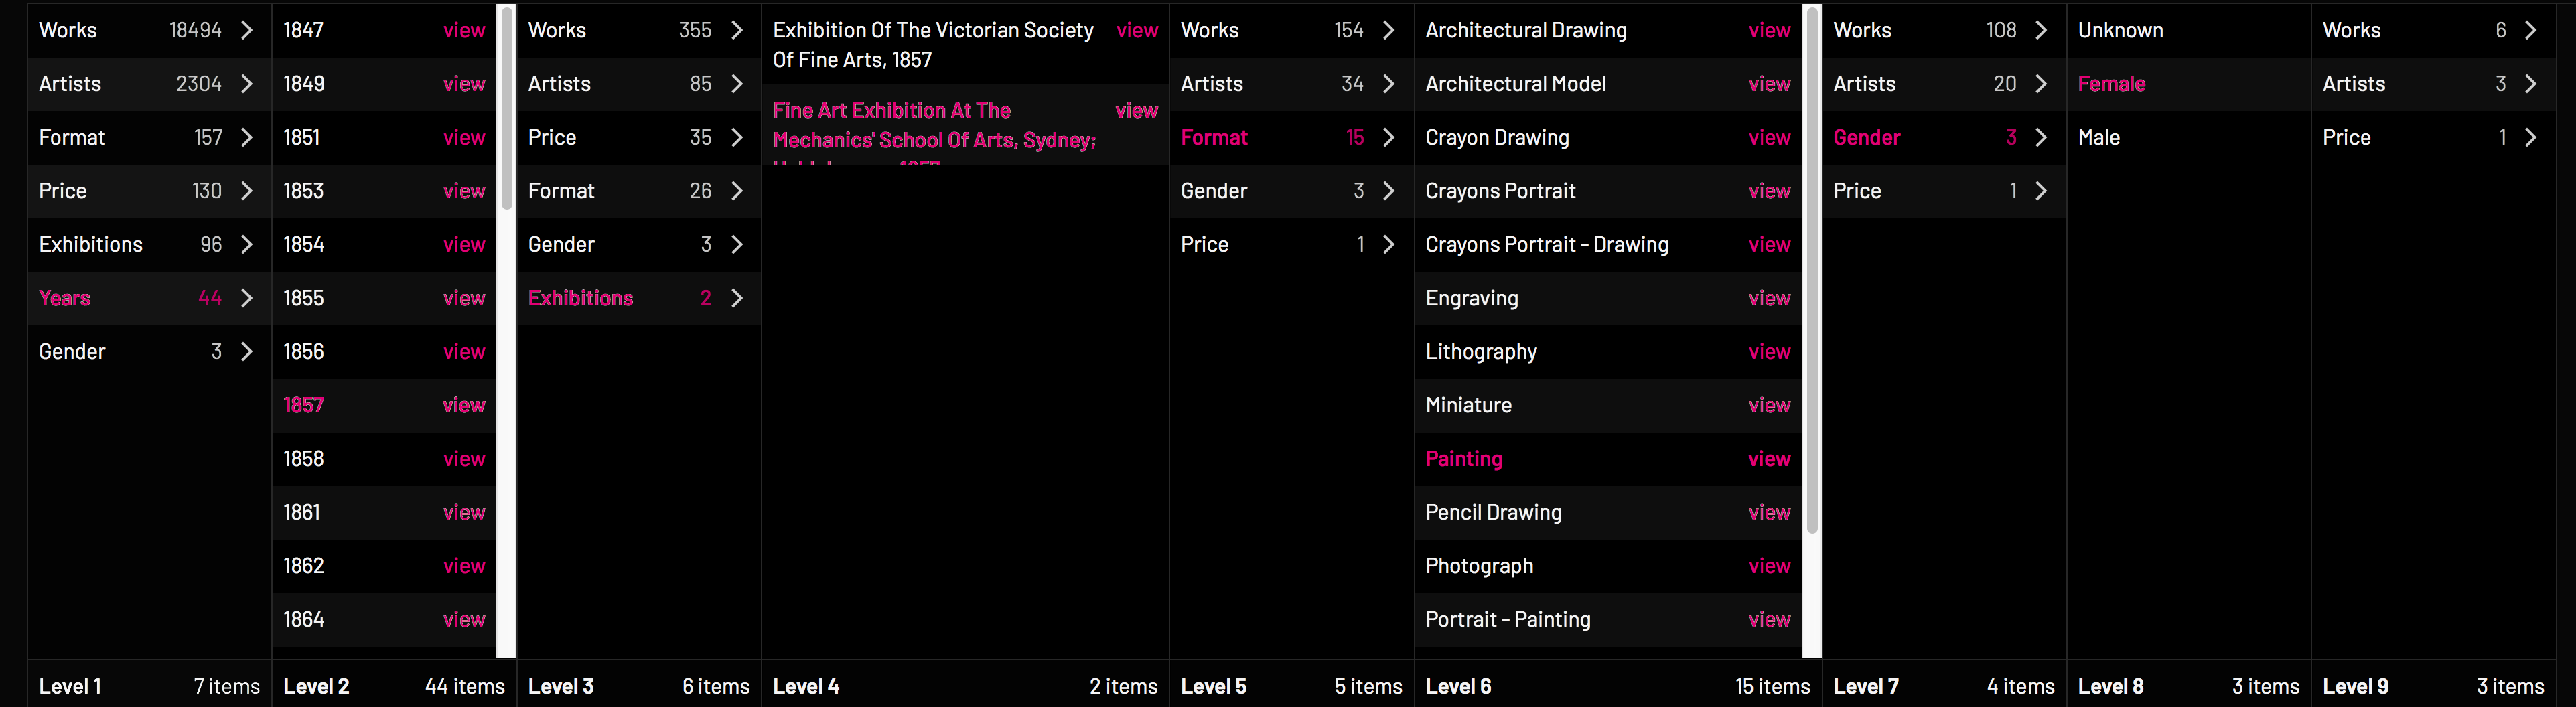 Art Index Explore page example